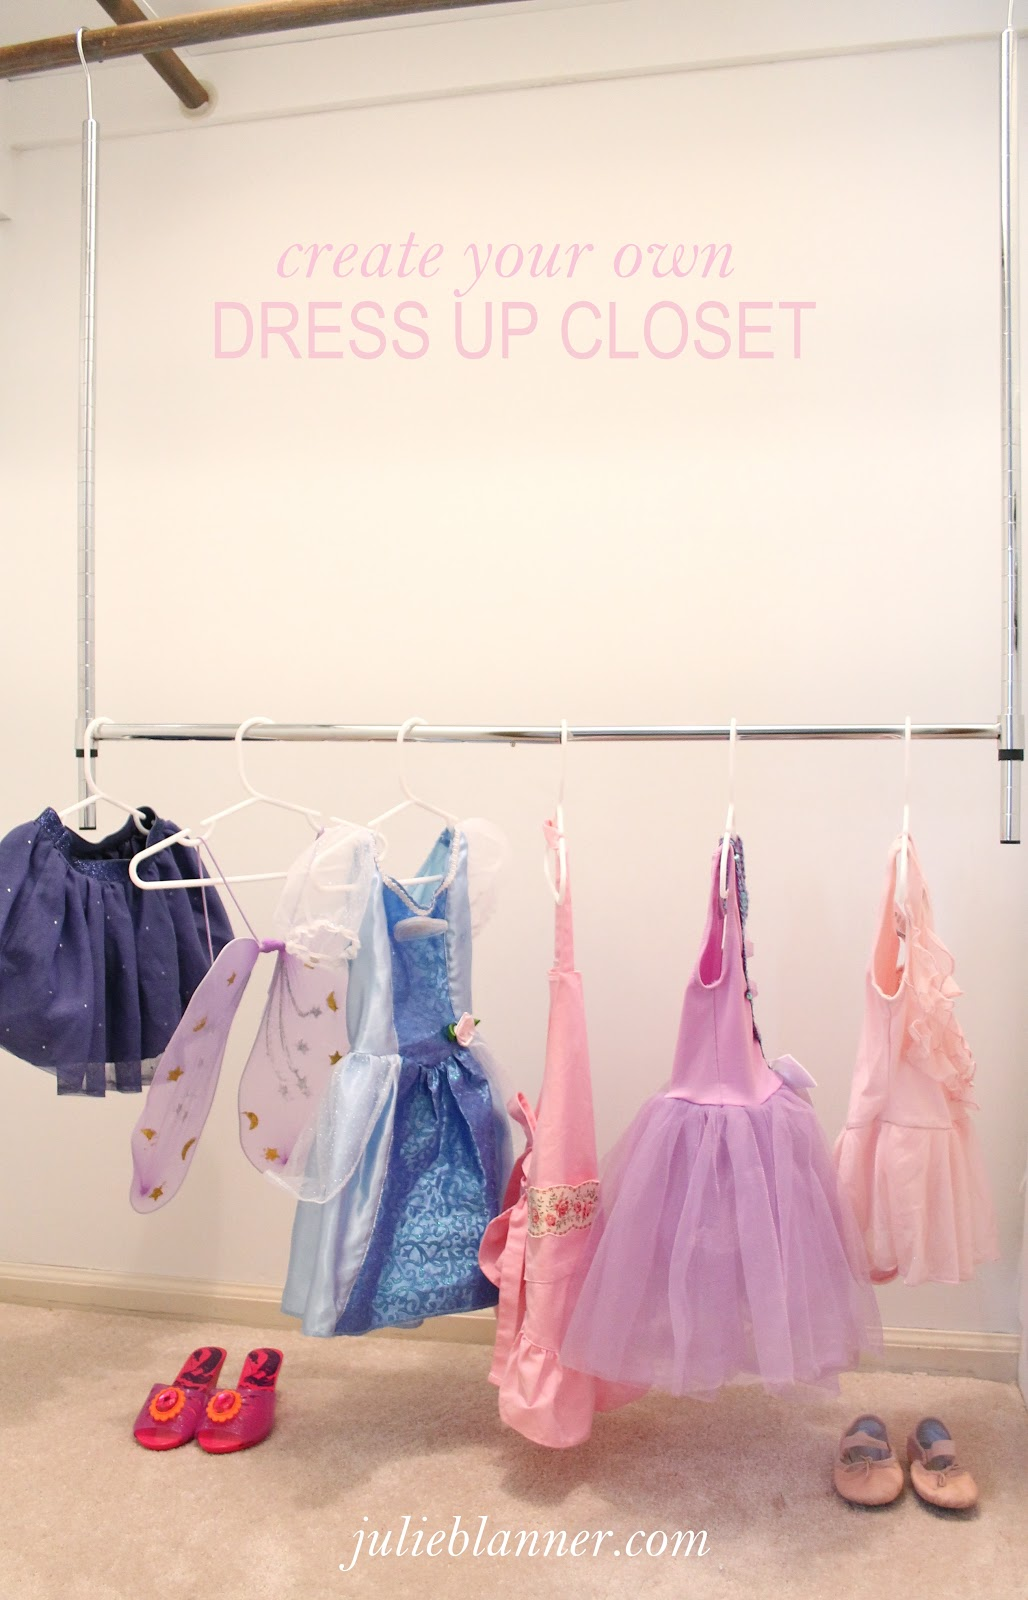 Create your own dress up closet julie blanner for Create your own closet